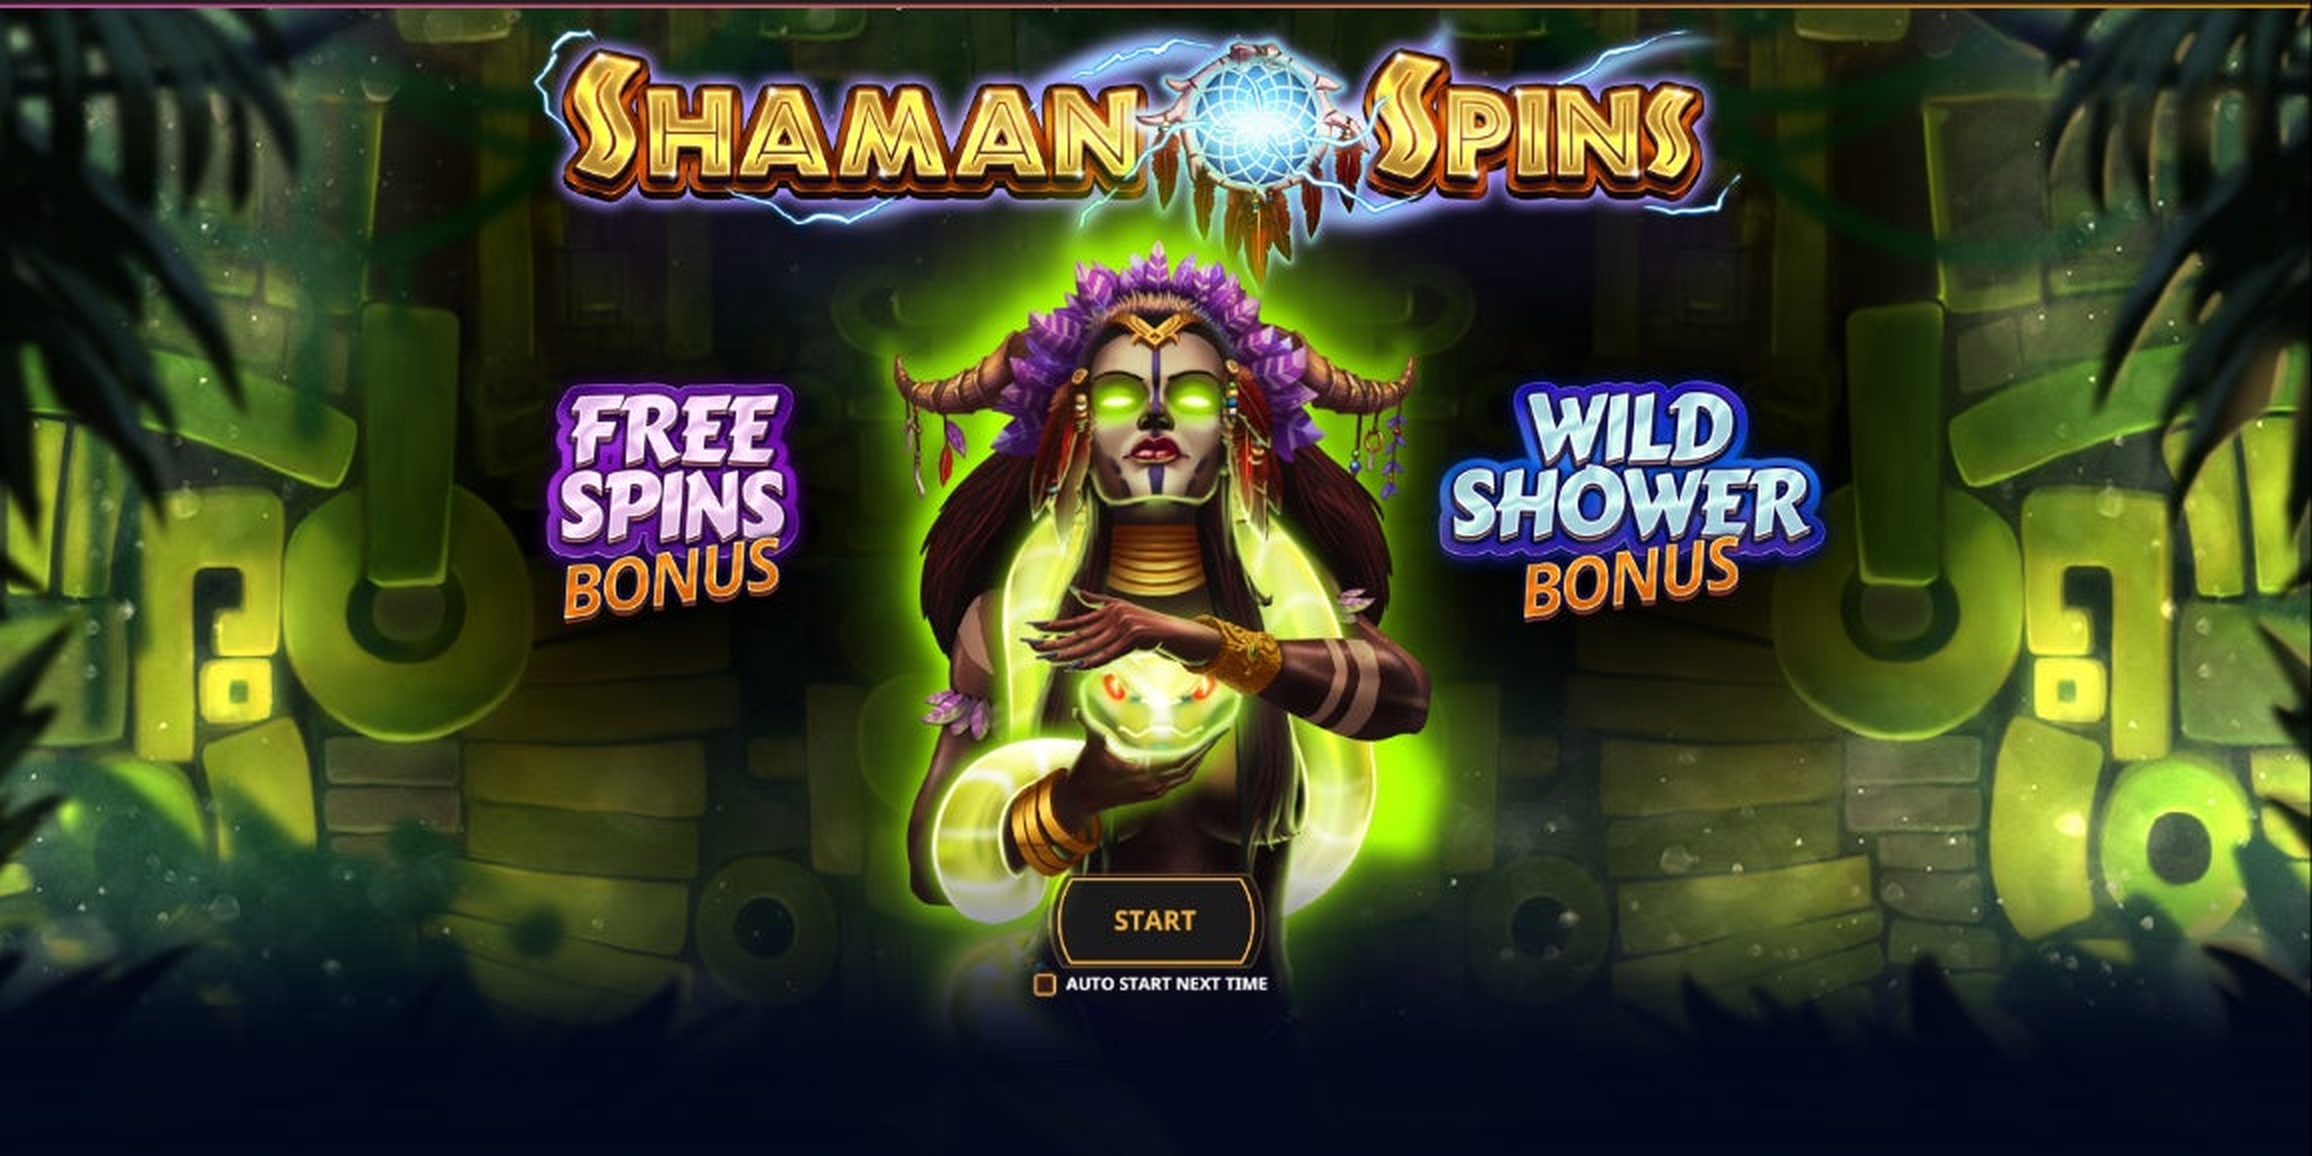 The Shaman Spins Online Slot Demo Game by Cayetano Gaming